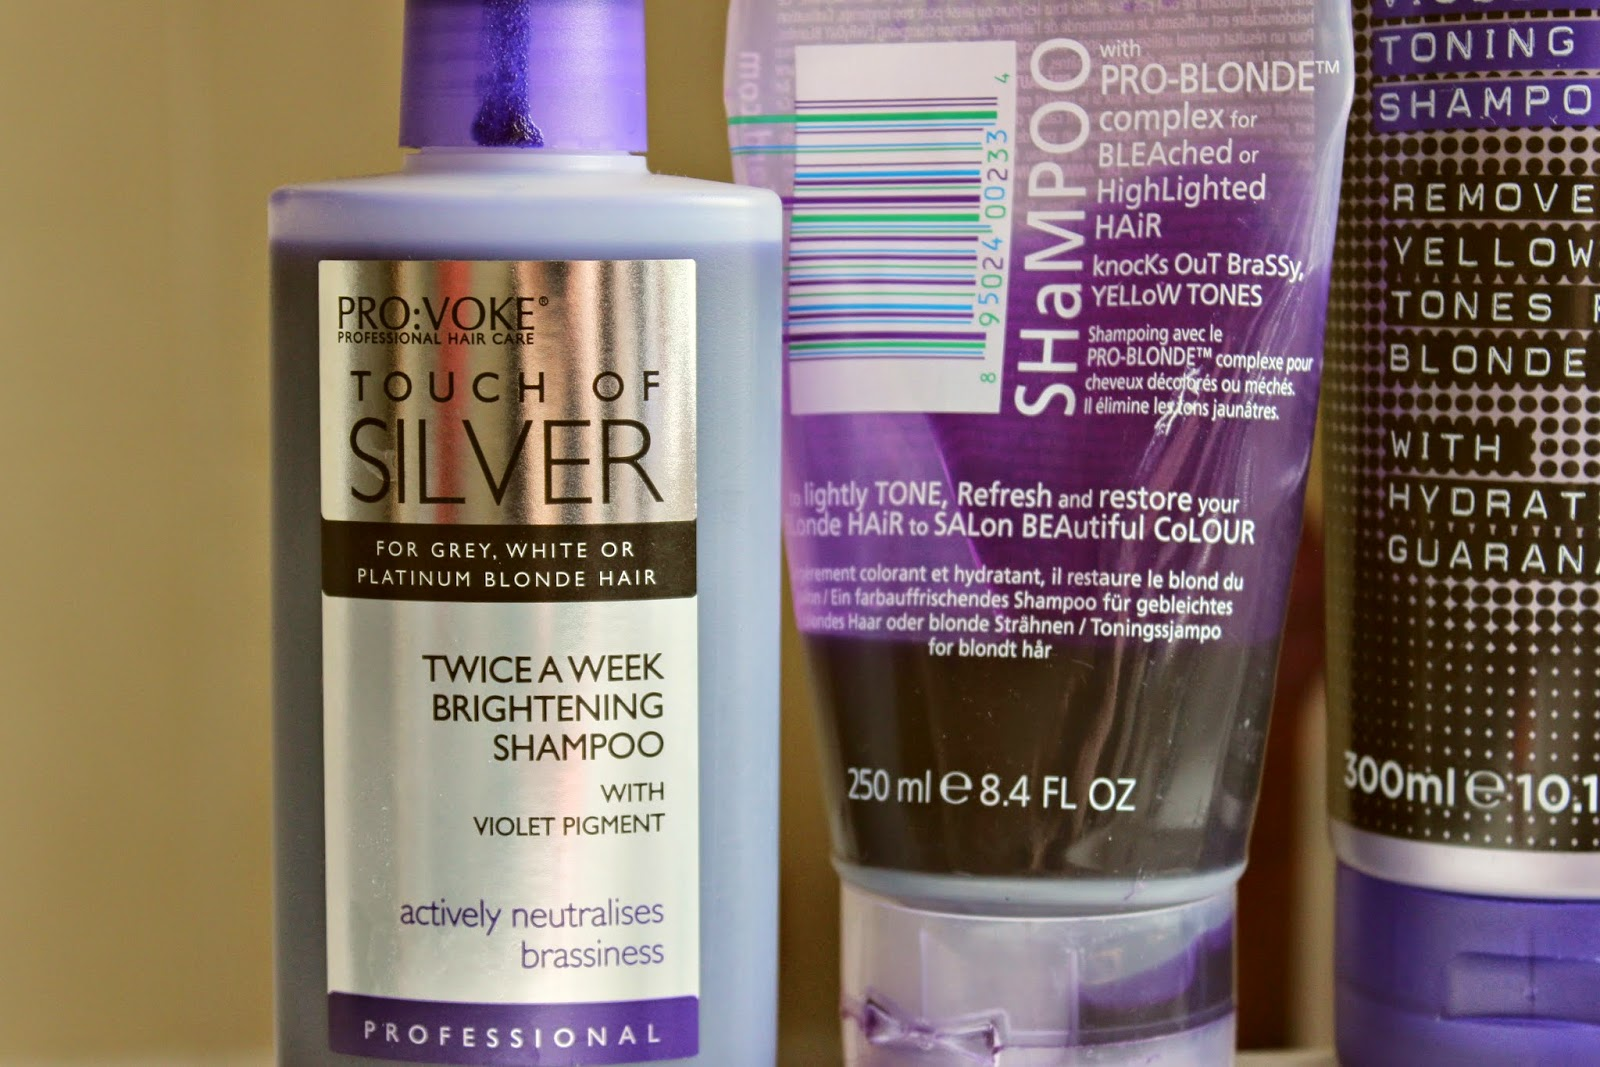 How To Tone Your Hair With Purple Shampoo From Platinum Blonde Silver You